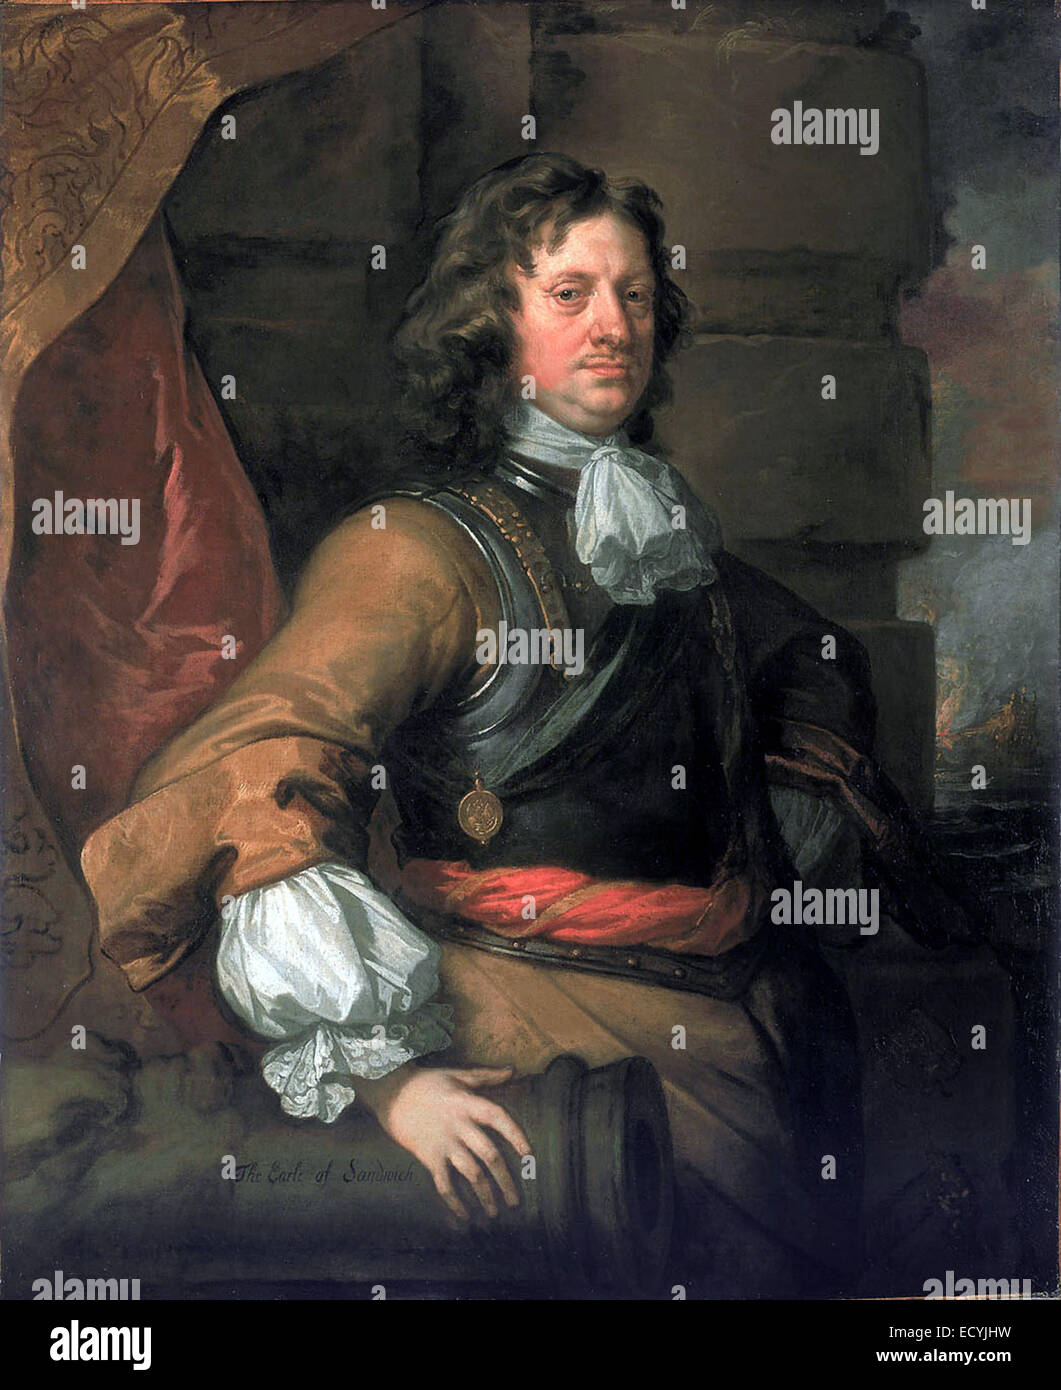 Edward Montagu (1625-1672), 1st Earl of Sandwich by Peter Lely - Stock Image